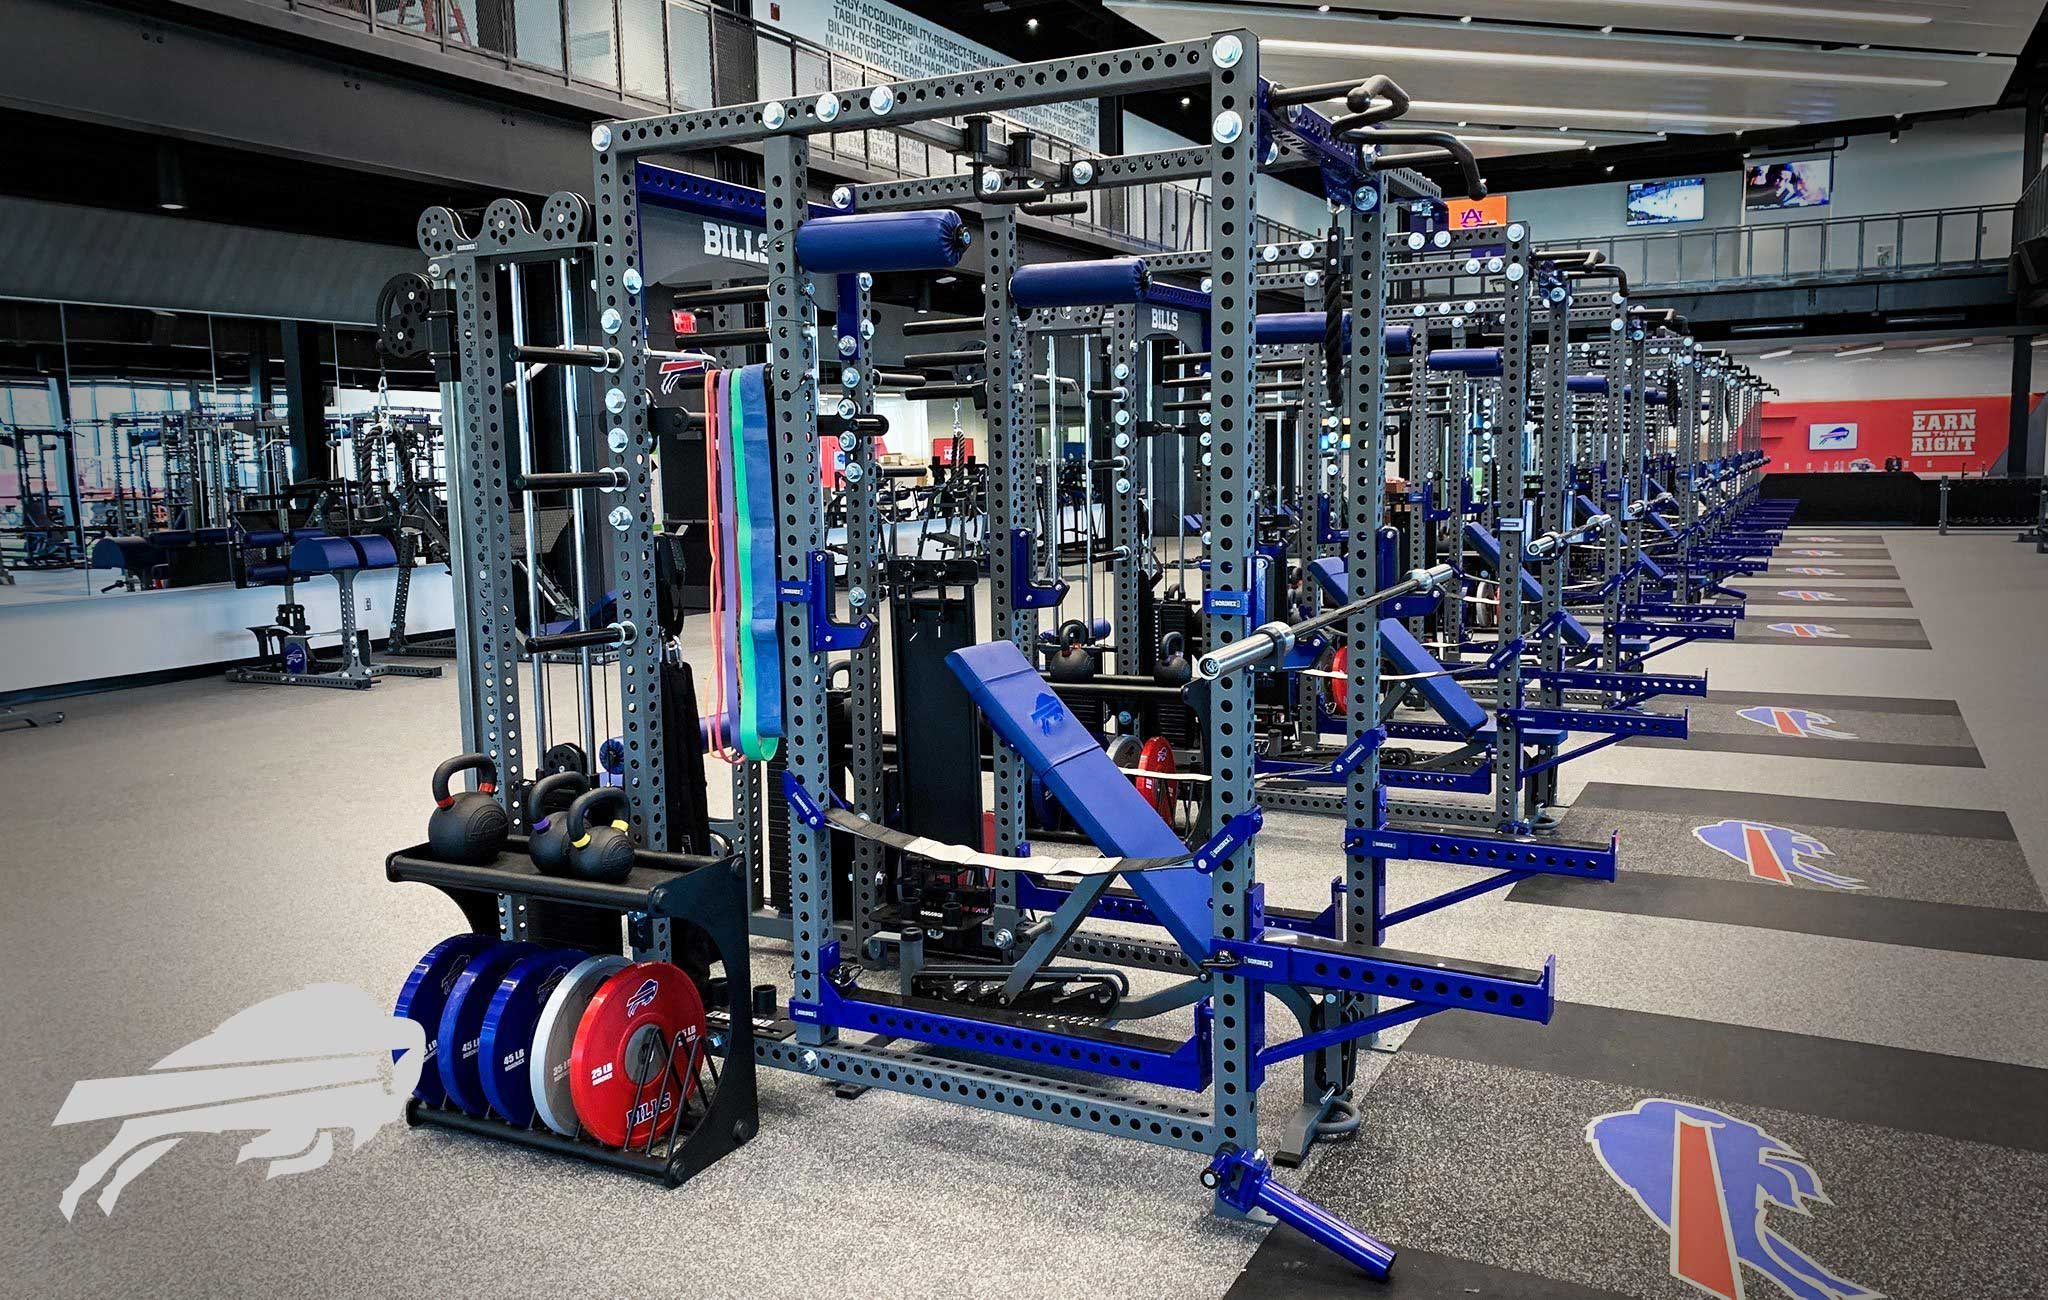 Buffalo Bills Sorinex strength and conditioning facility